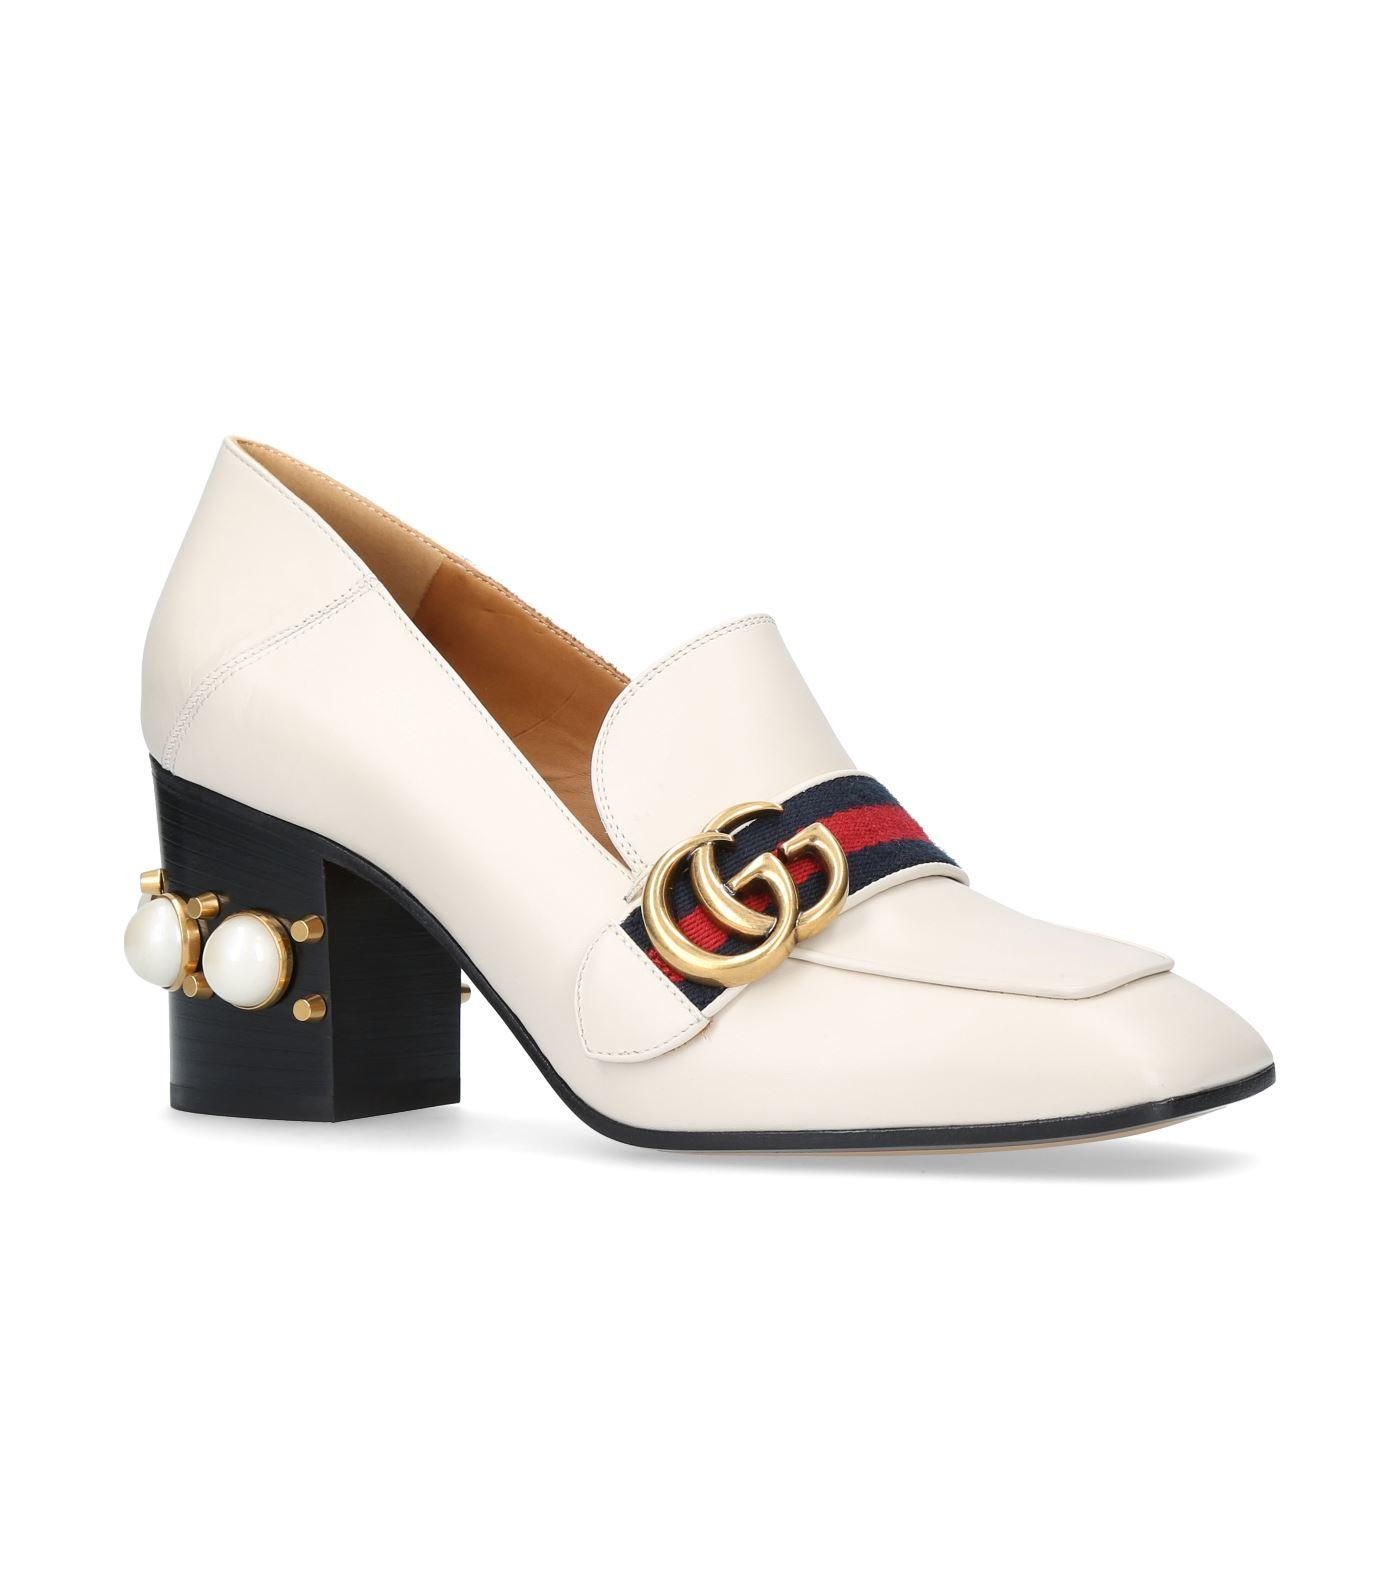 Gucci Leather Peyton Pearl Pumps 75 in